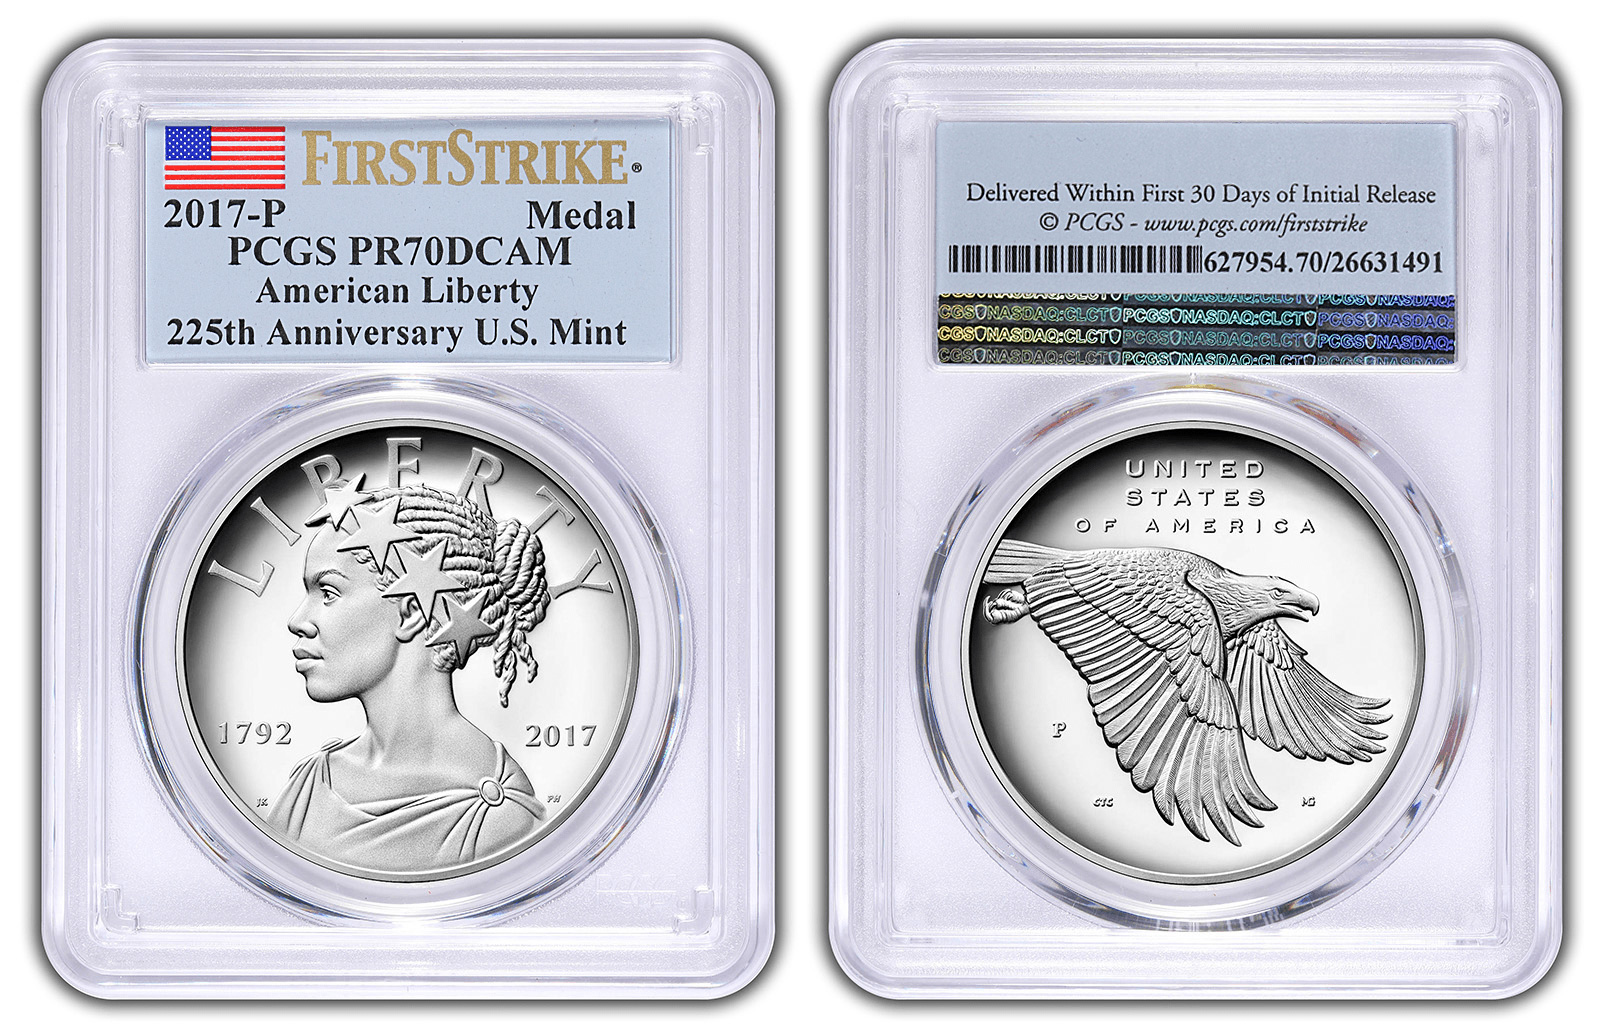 2016-S American Liberty Silver Medal PCGS PR70DCAM FIRST STRIKE